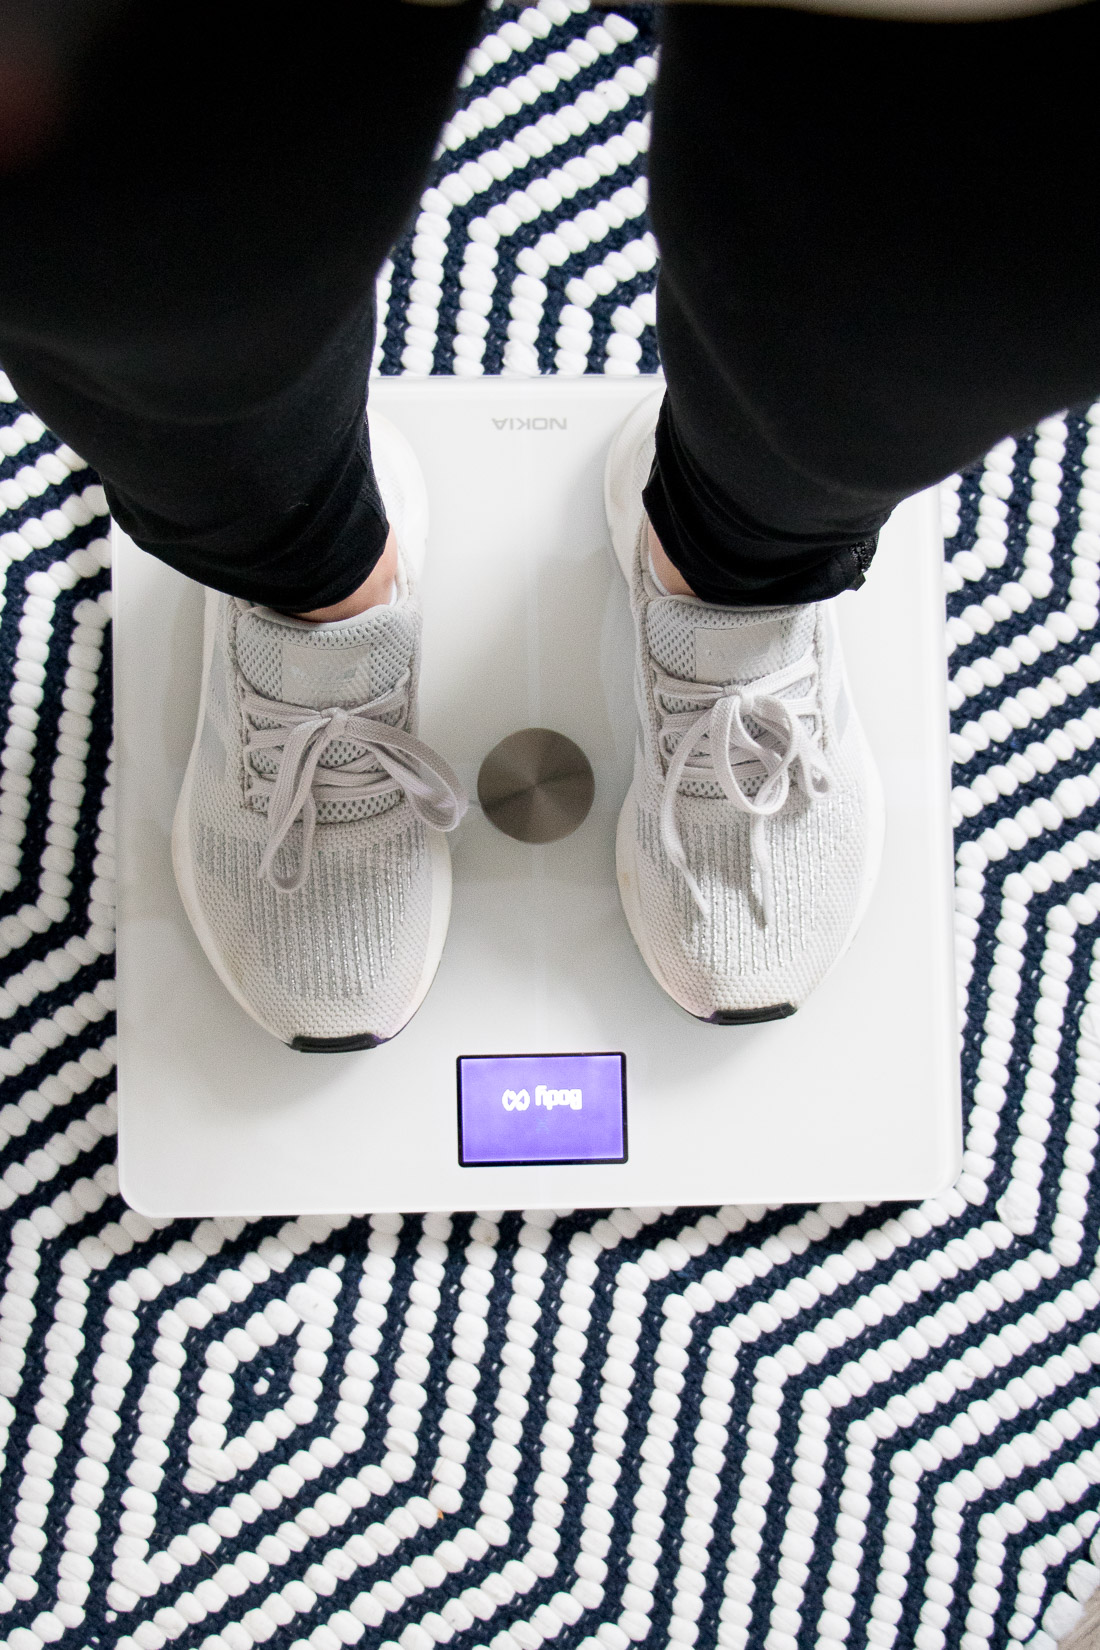 Measure Body Fat Percentage with the Nokia Body+ Scale